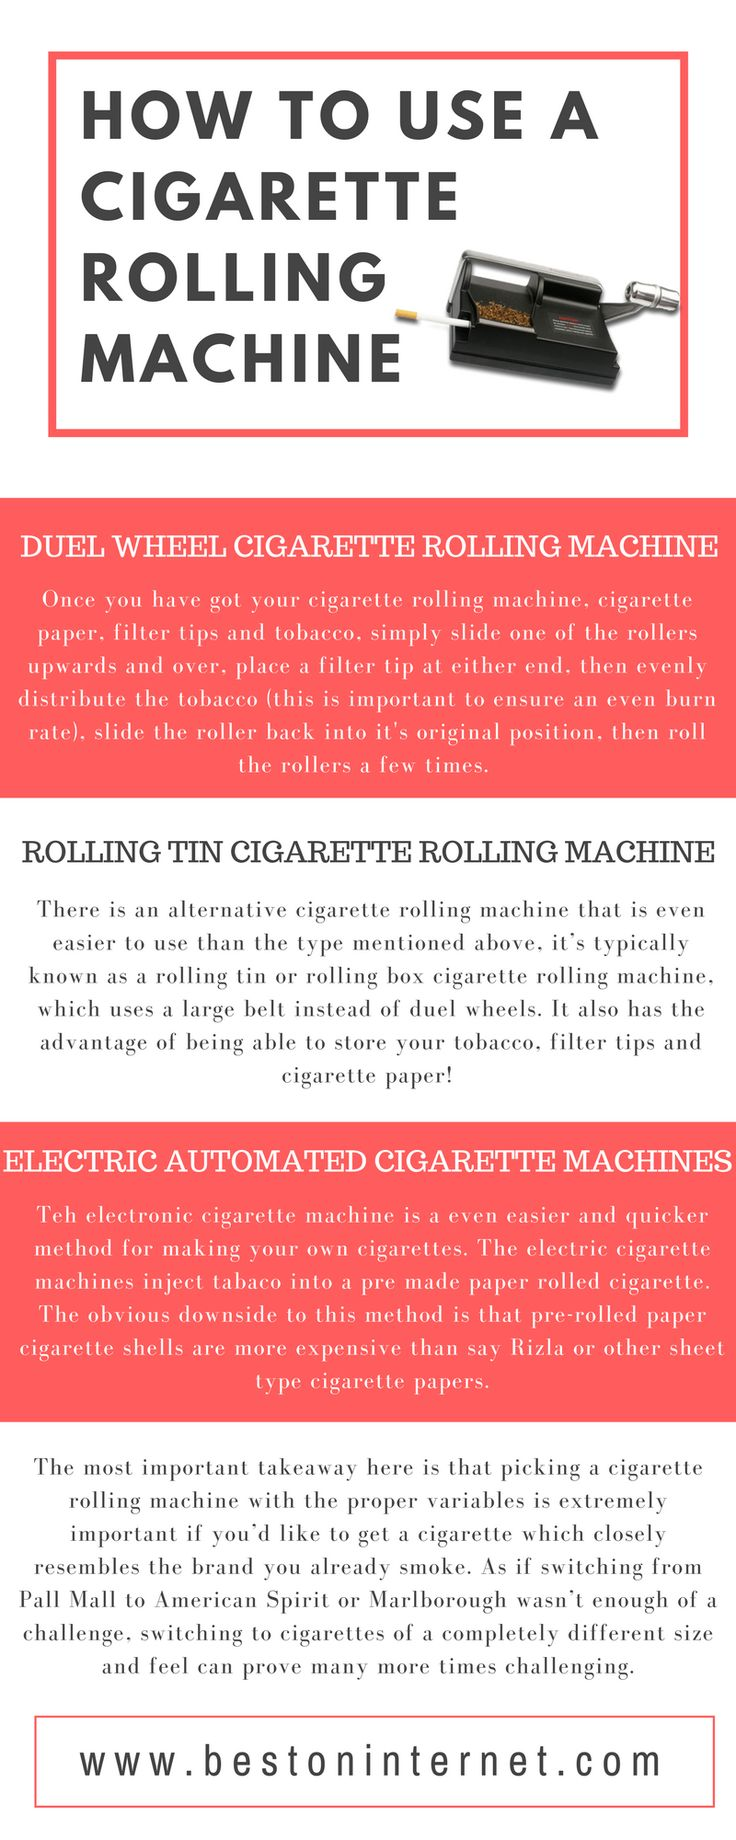 Tips for using Electric #Cigarette Rolling Machines http://www.bestoninternet.com/health-personal-care/household-supplies/electric-cigarette-rolling-machines/